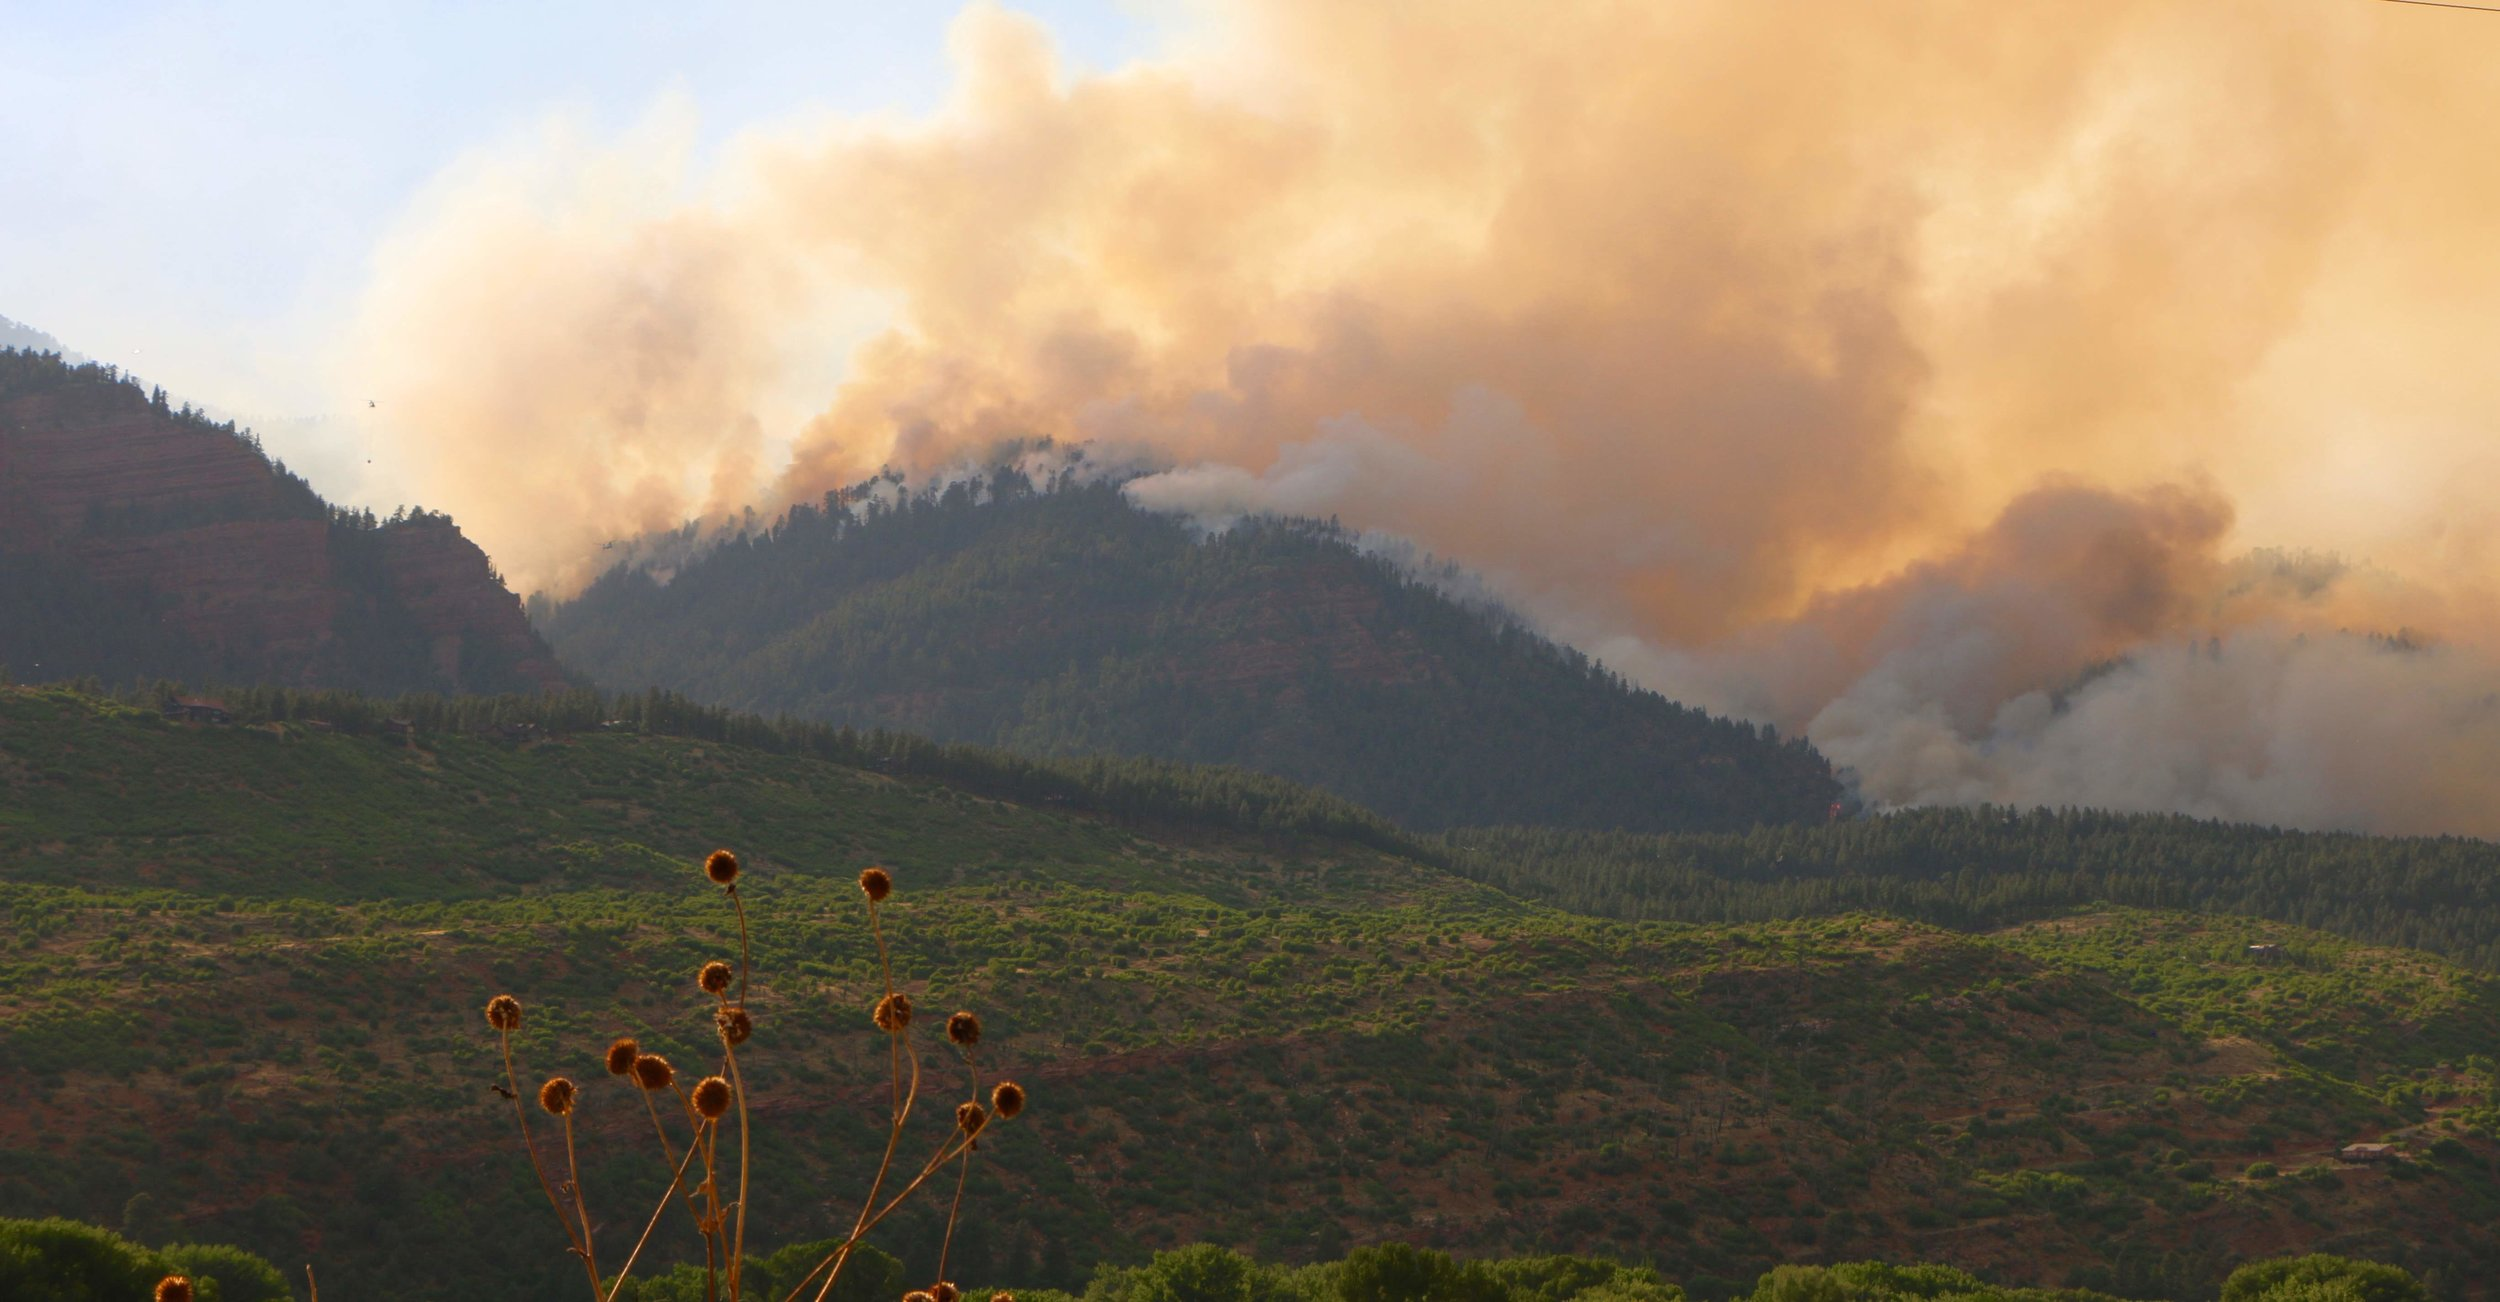 The 416 Fire burns behind an area that burned during the Missionary Ridge Fire, but has begun to regenerate. Photo by Priscilla Sherman.